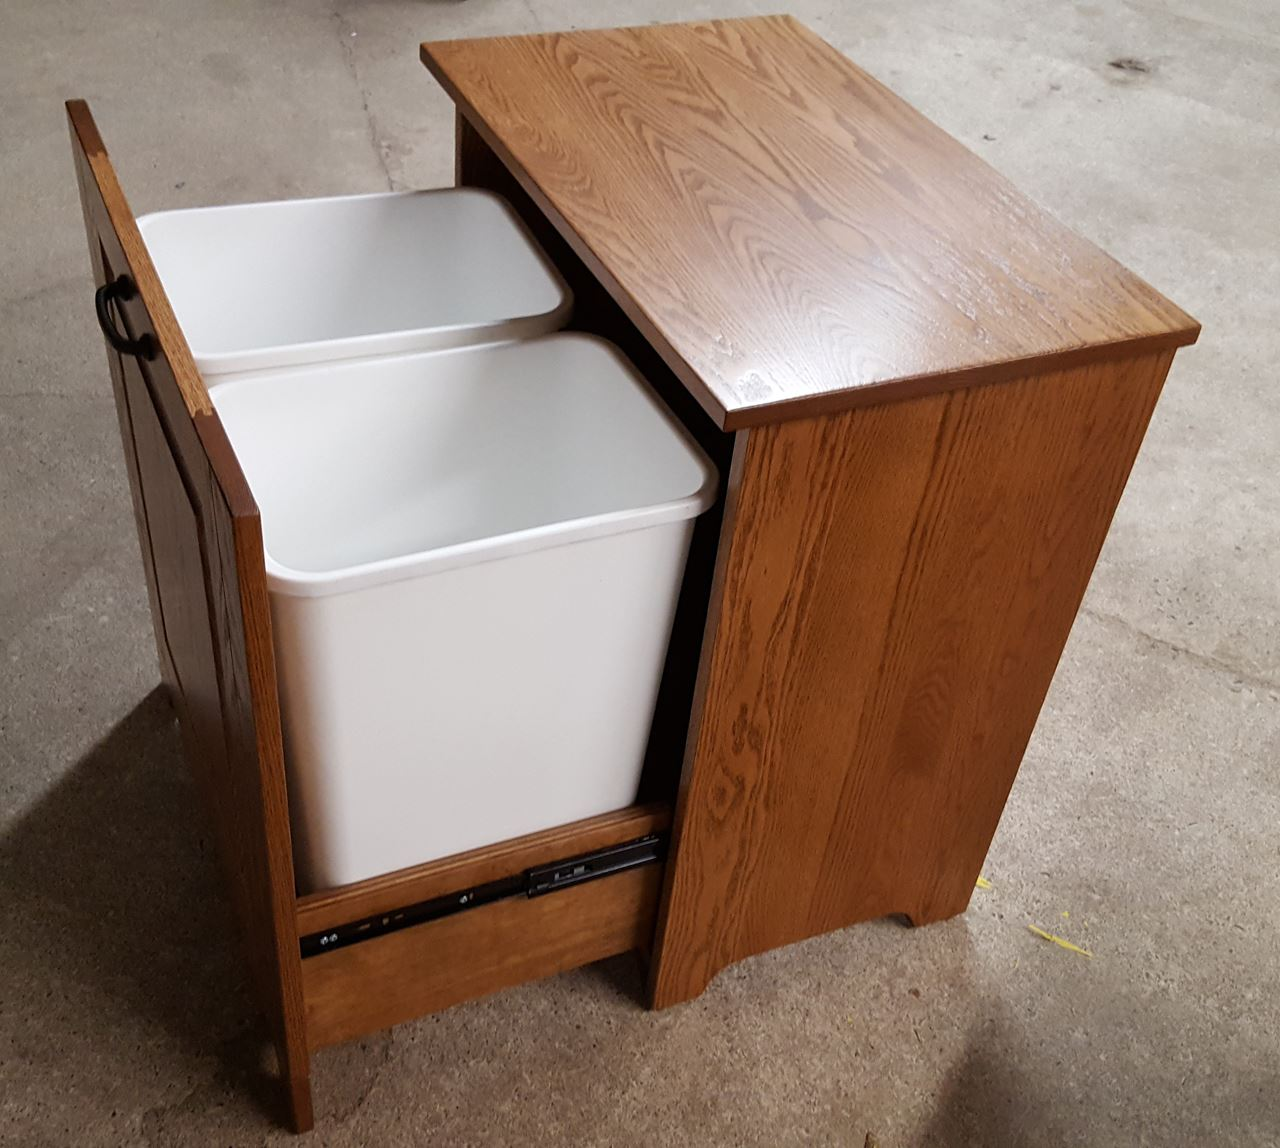 Marvelous Picture Of Amish Wooden Double Tilt Out Trash Bin ...